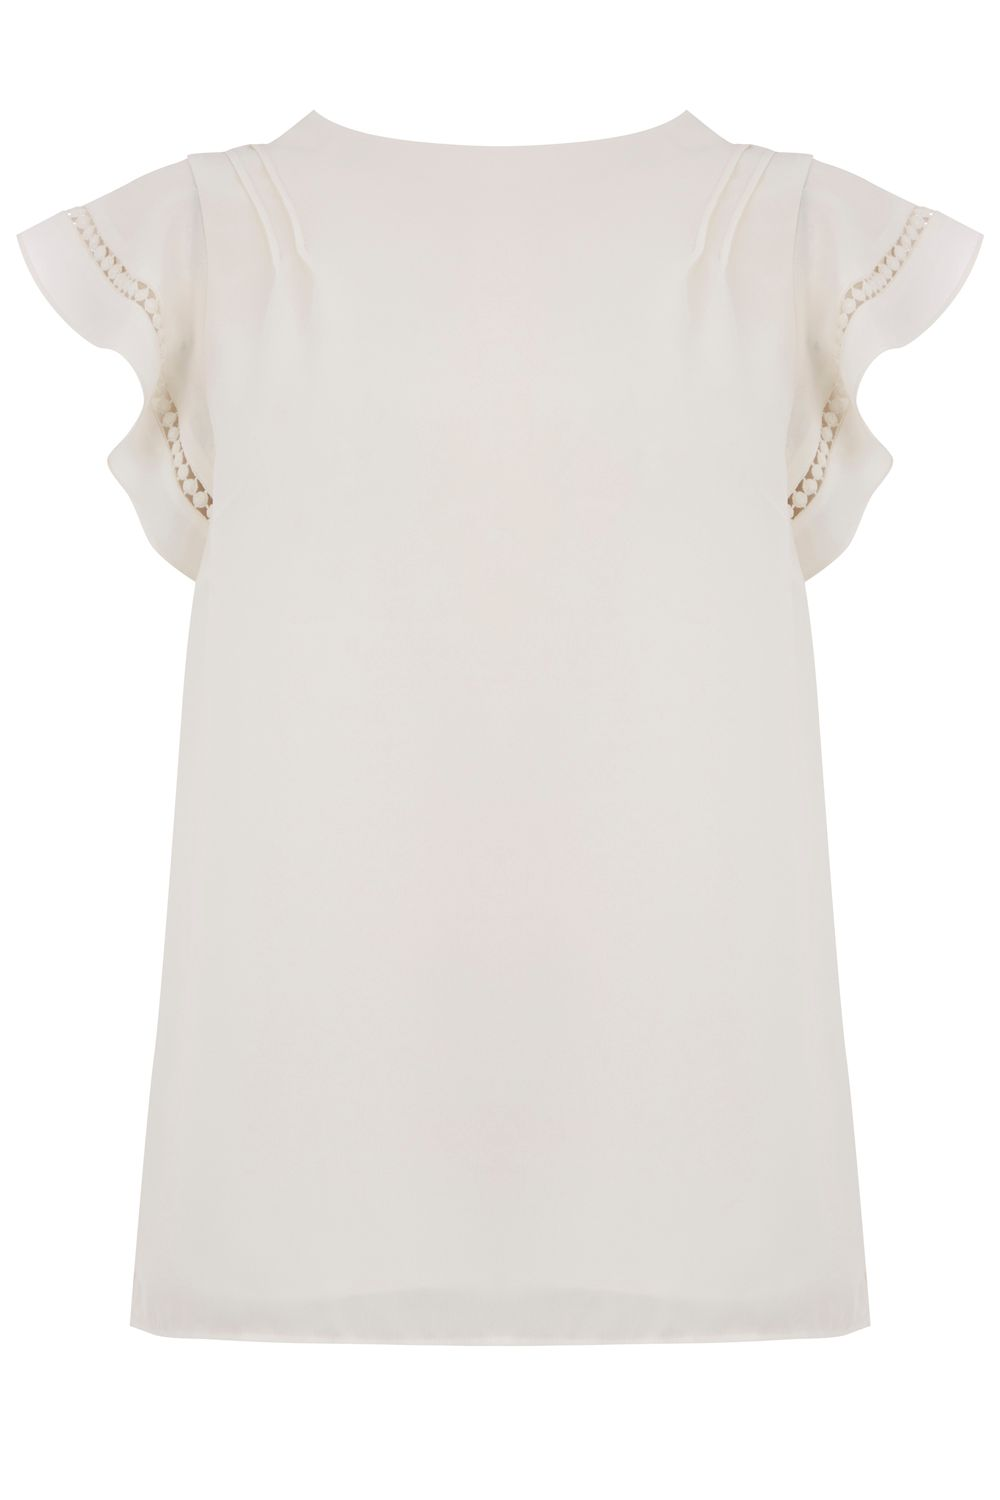 Oasis PLAIN FRILL TRIM TOP, Off White